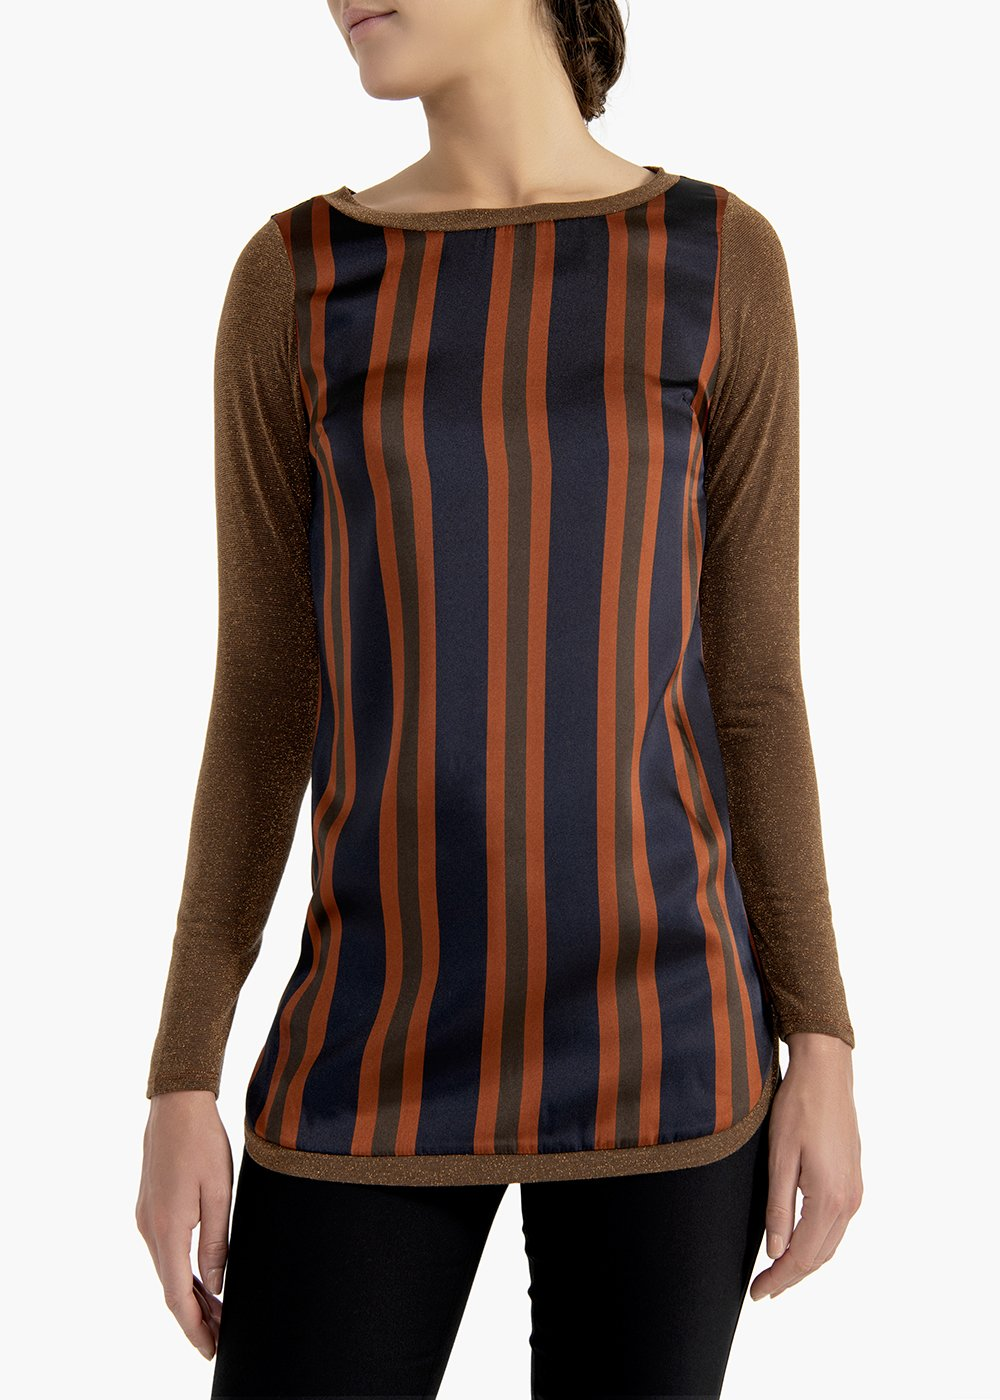 Sweater Madame with striped silk panel - Ruggine /   Blue Stripes - Woman